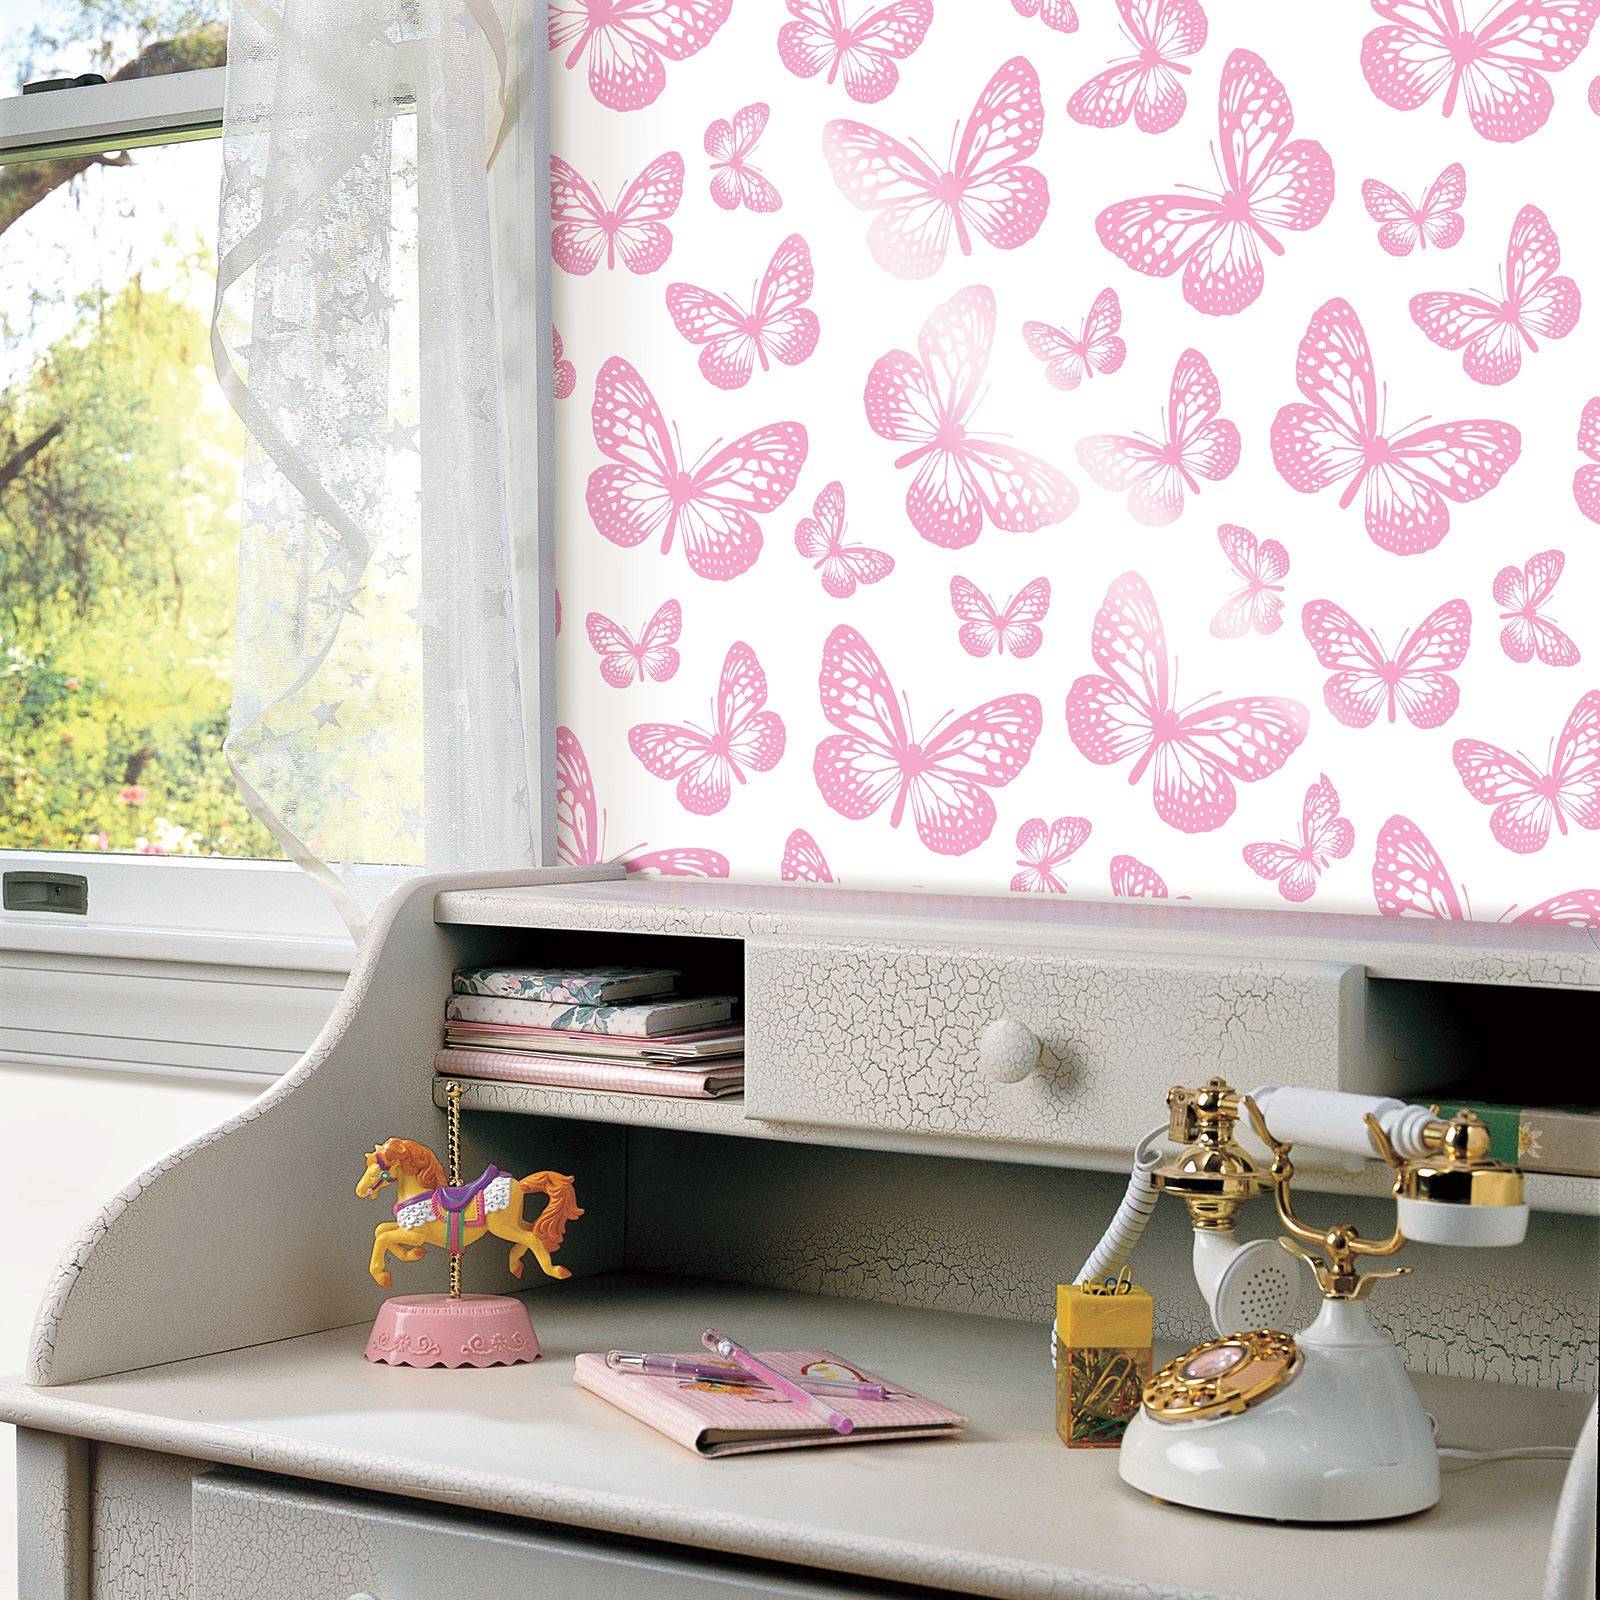 Butterfly Bedroom Themes Butterfly Wallpaper Girls Bedroom Decor Pink White Teal